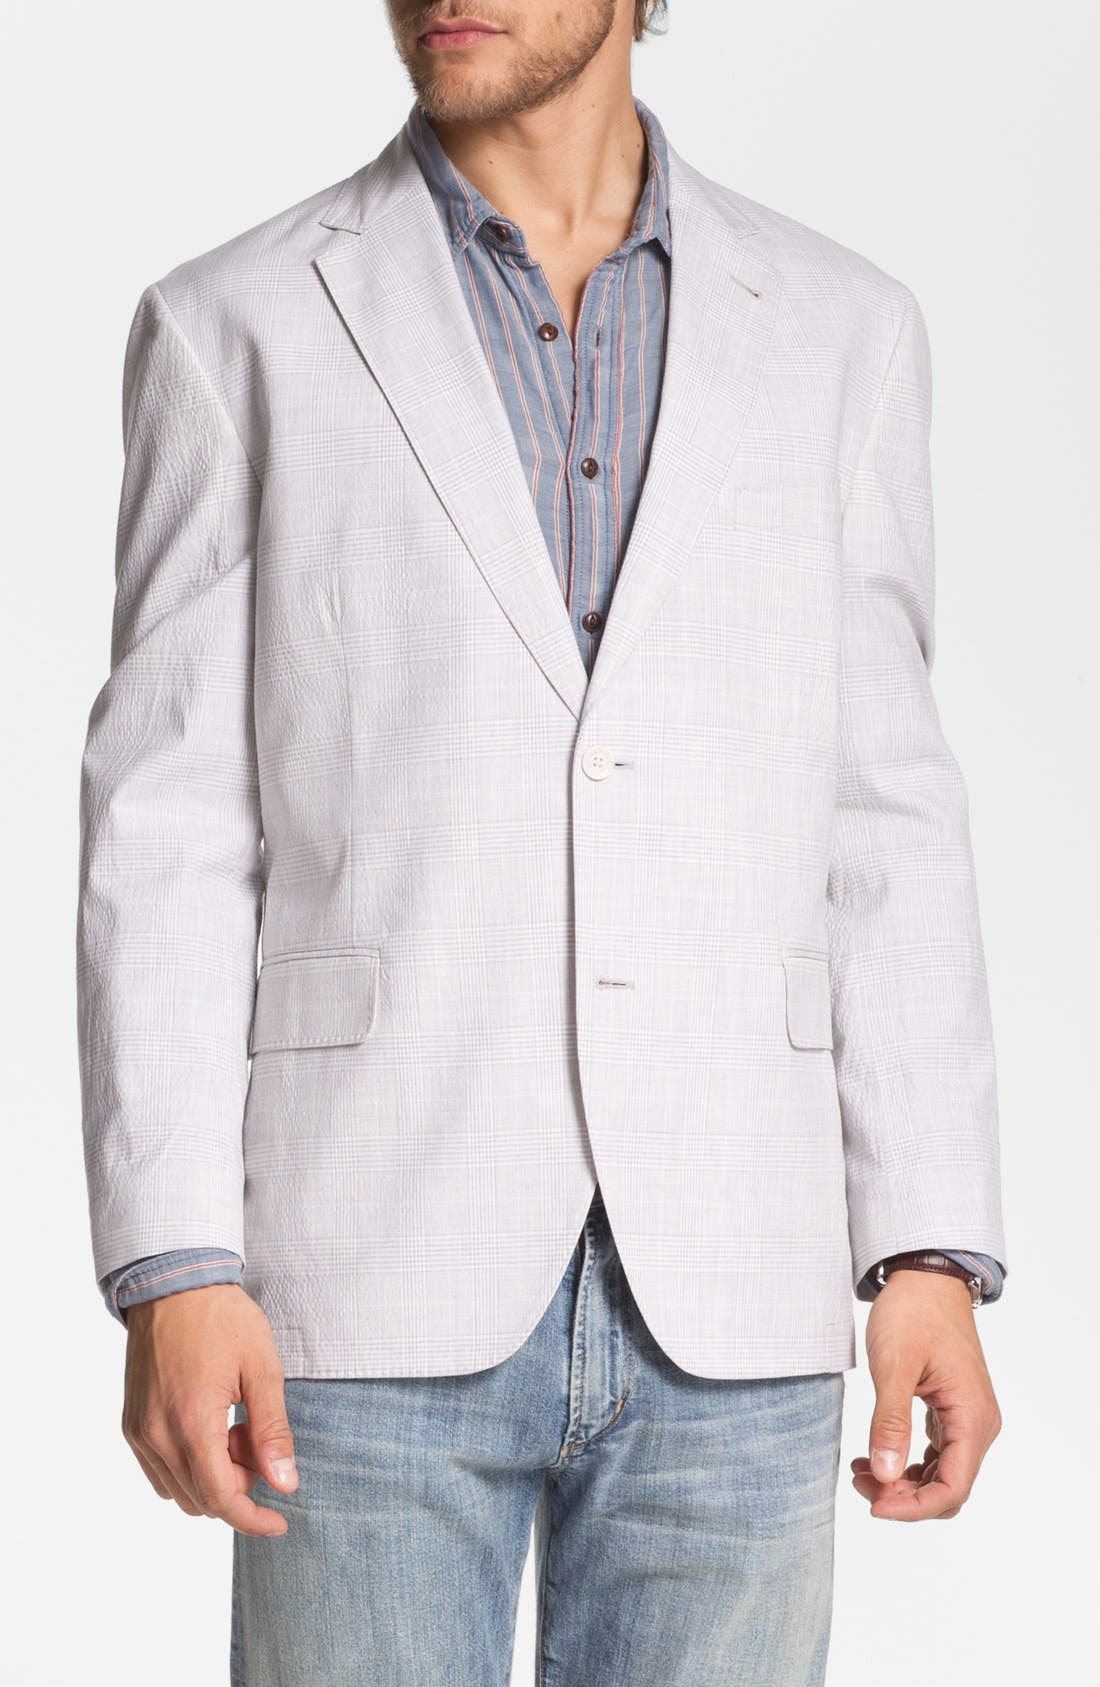 Main Image - Kroon 'Taylor' Sportcoat